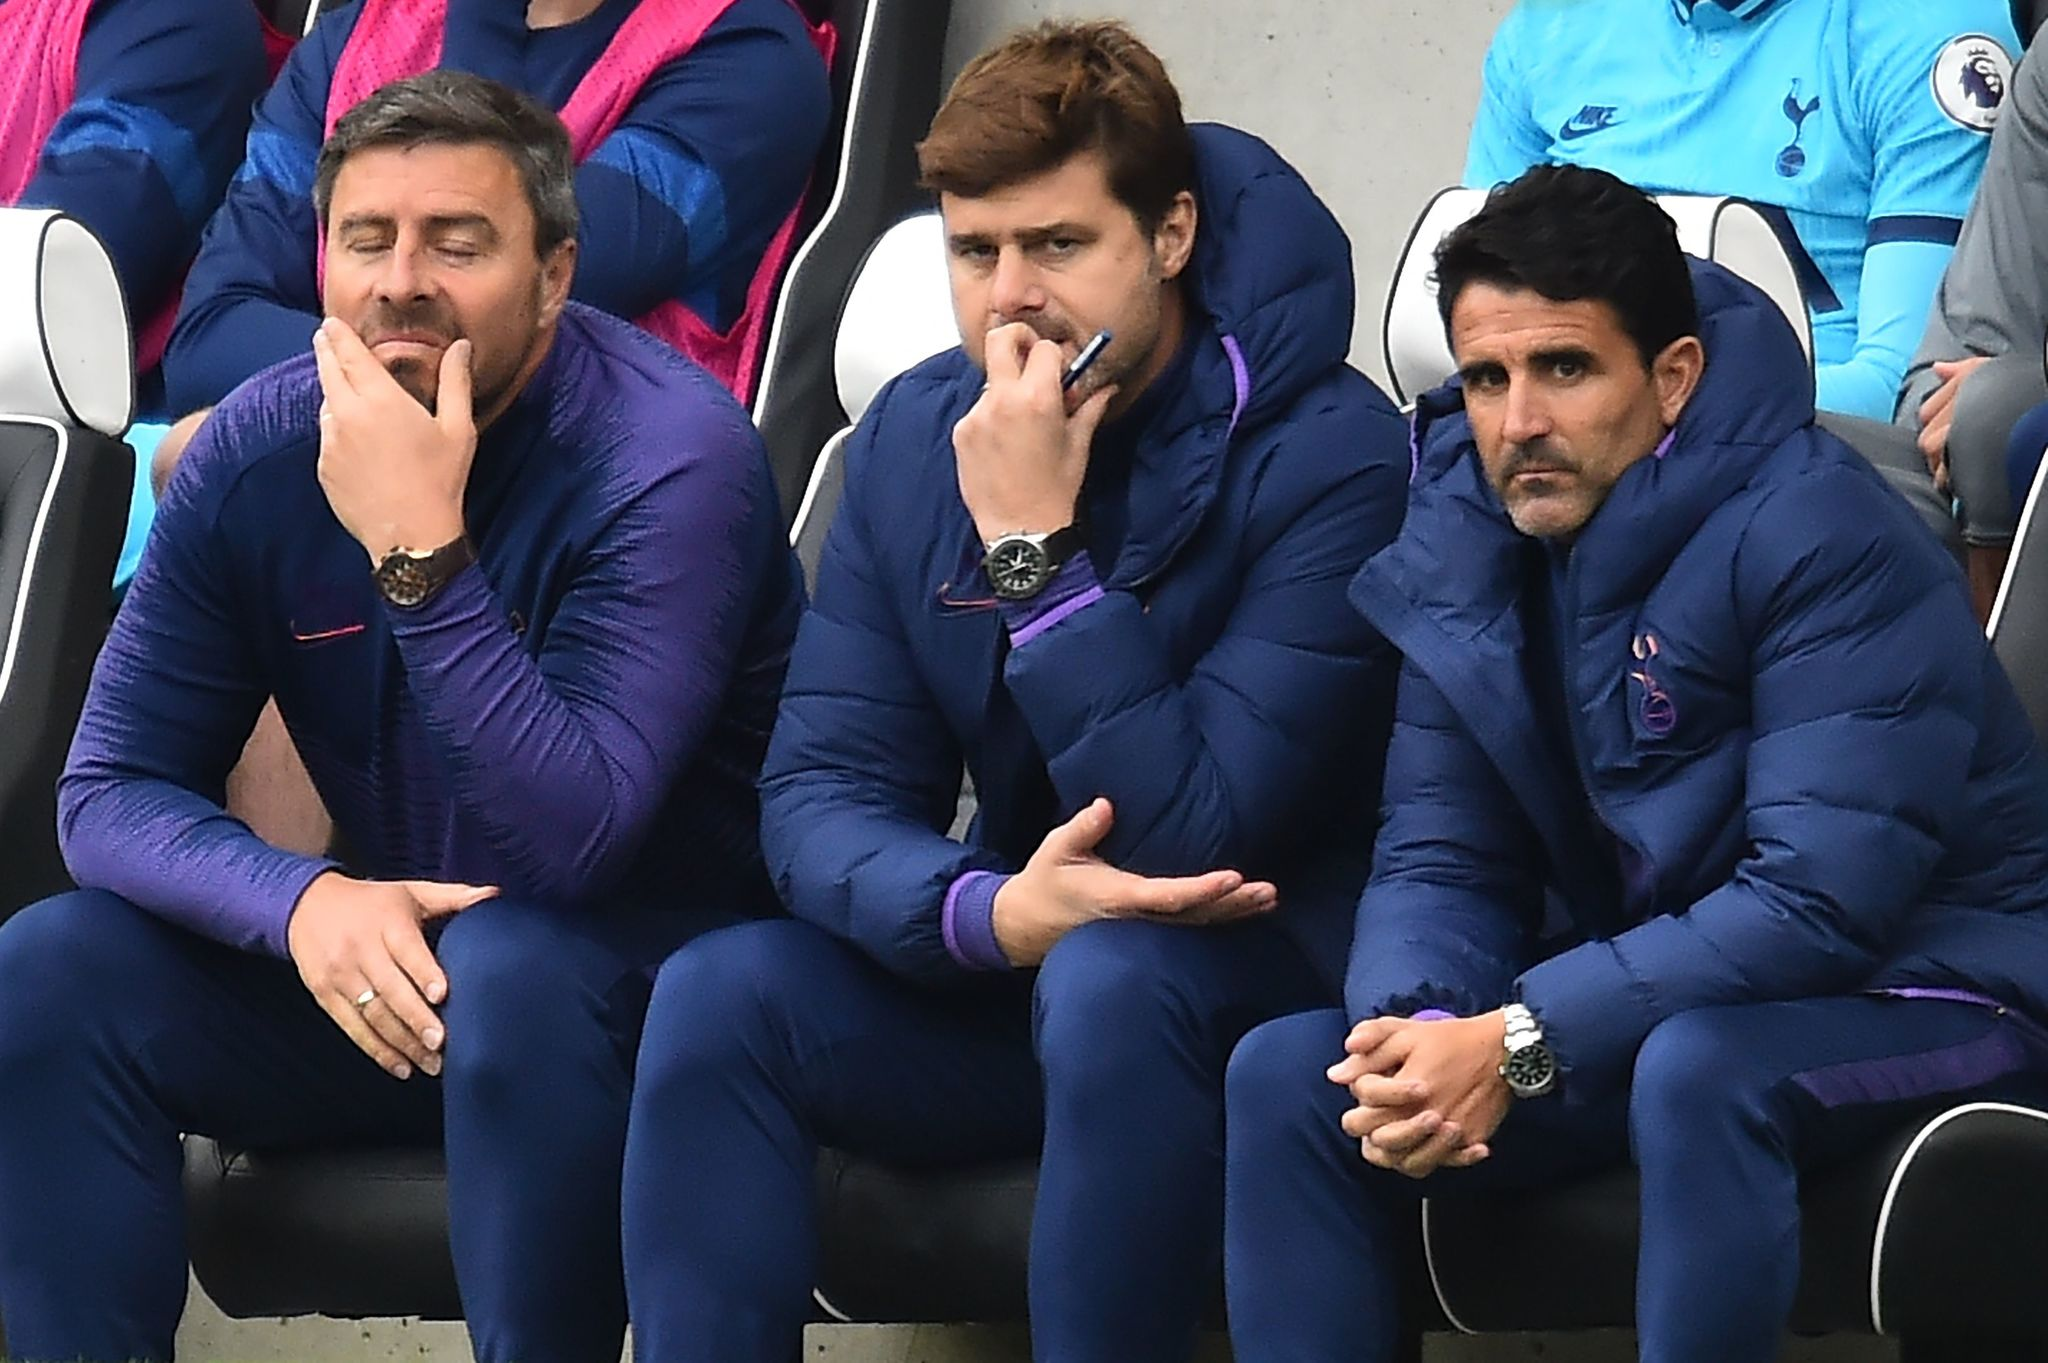 <HIT>Tottenham</HIT> Hotspurs Argentinian head coach Mauricio Pochettino (C) looks on during the English Premier League football match between Brighton and <HIT>Tottenham</HIT> Hotspur at the American Express Community Stadium in Brighton, southern England on October 5, 2019. (Photo by Glyn KIRK / AFP) / RESTRICTED TO EDITORIAL USE. No use with unauthorized audio, video, data, fixture lists, club/league logos or live services. Online in-match use limited to 120 images. An additional 40 images may be used in extra time. No video emulation. Social media in-match use limited to 120 images. An additional 40 images may be used in extra time. No use in betting publications, games or single club/league/player publications. /